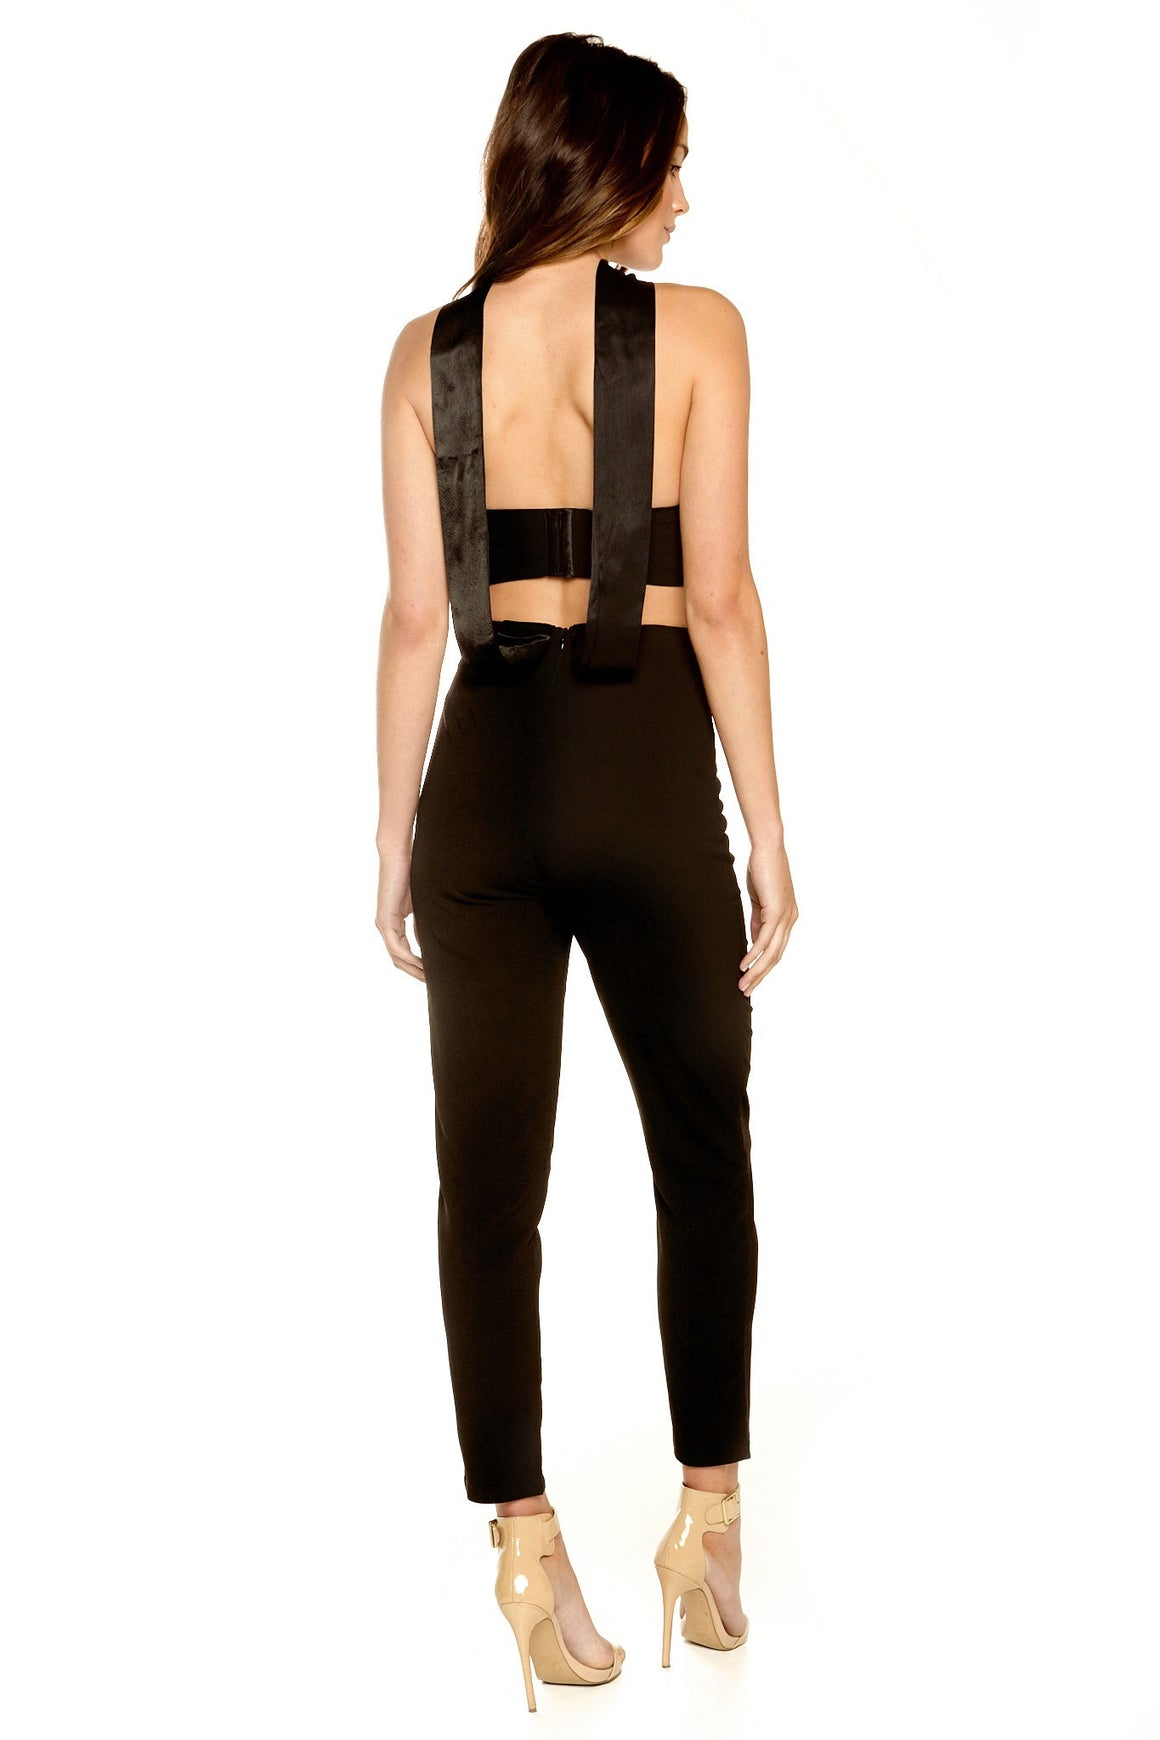 Perla Cutout Choker Jumpsuit - Black [SAMPLE SALE]